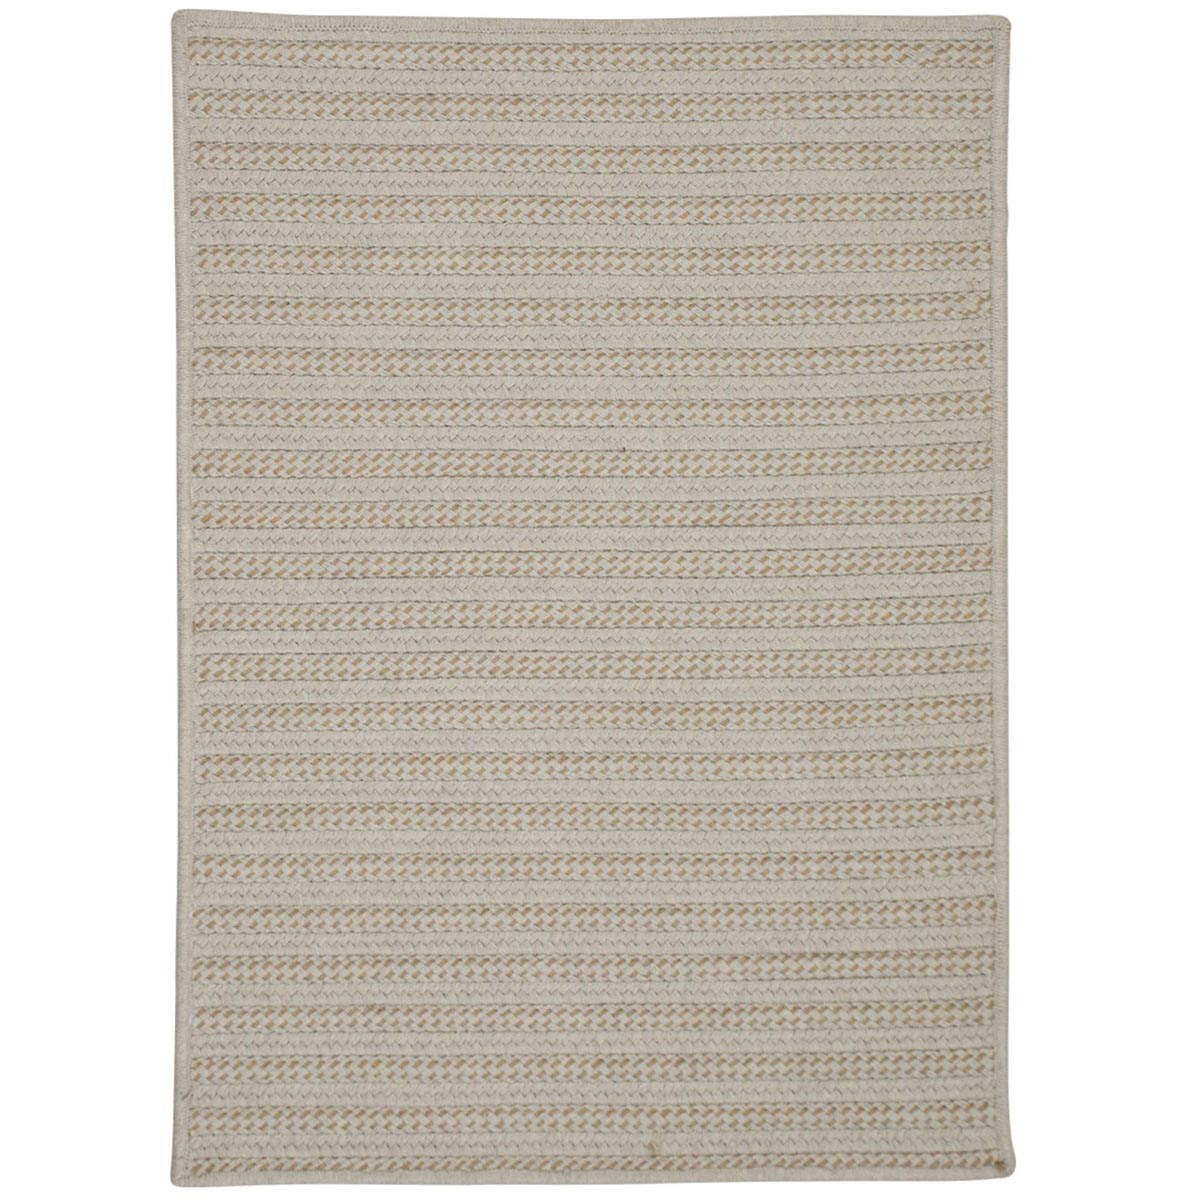 Sunbrella Booth Bay Wheat Outdoor Braided Rectangular Rugs